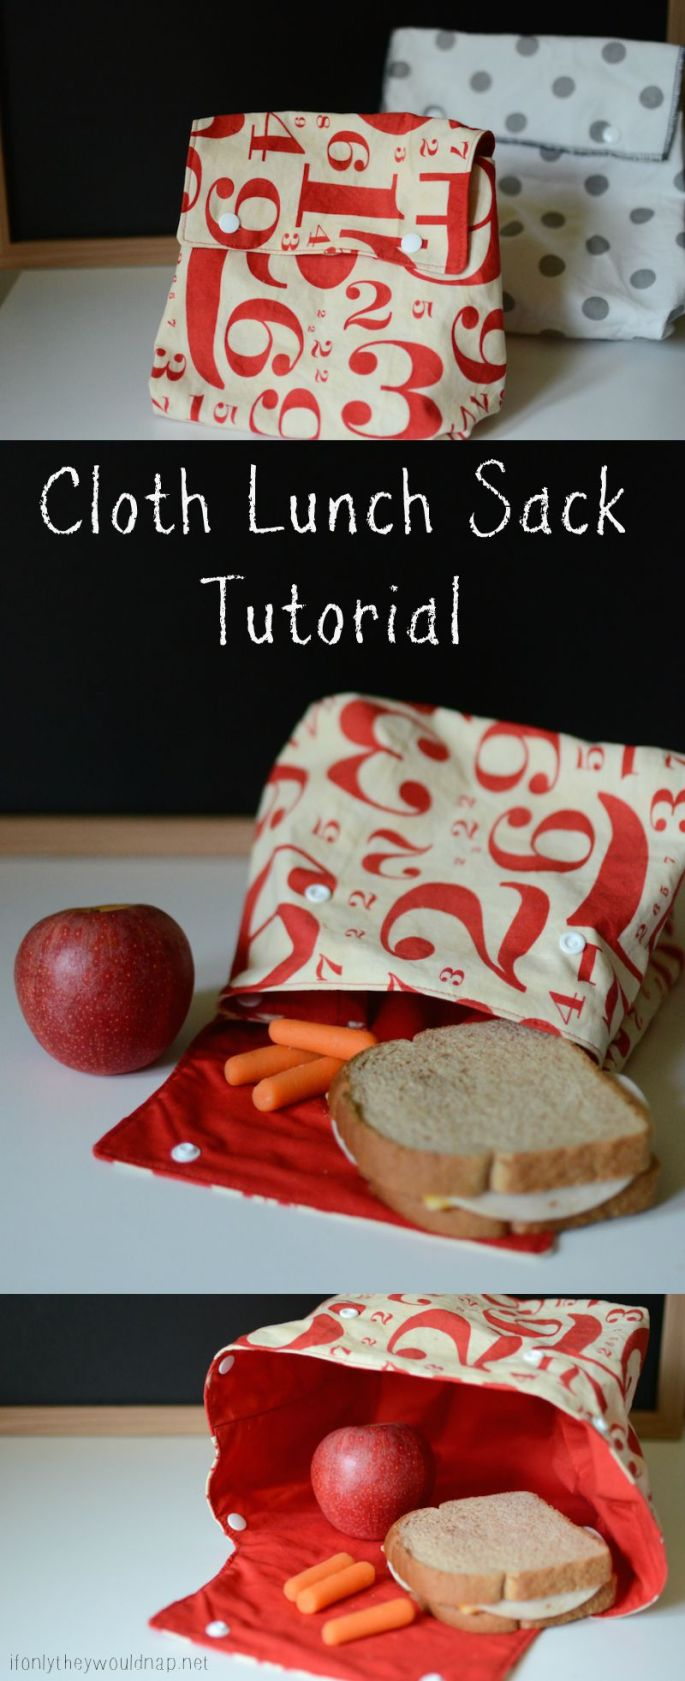 Cloth Lunch Sack Tutorial from If Only They Would Nap